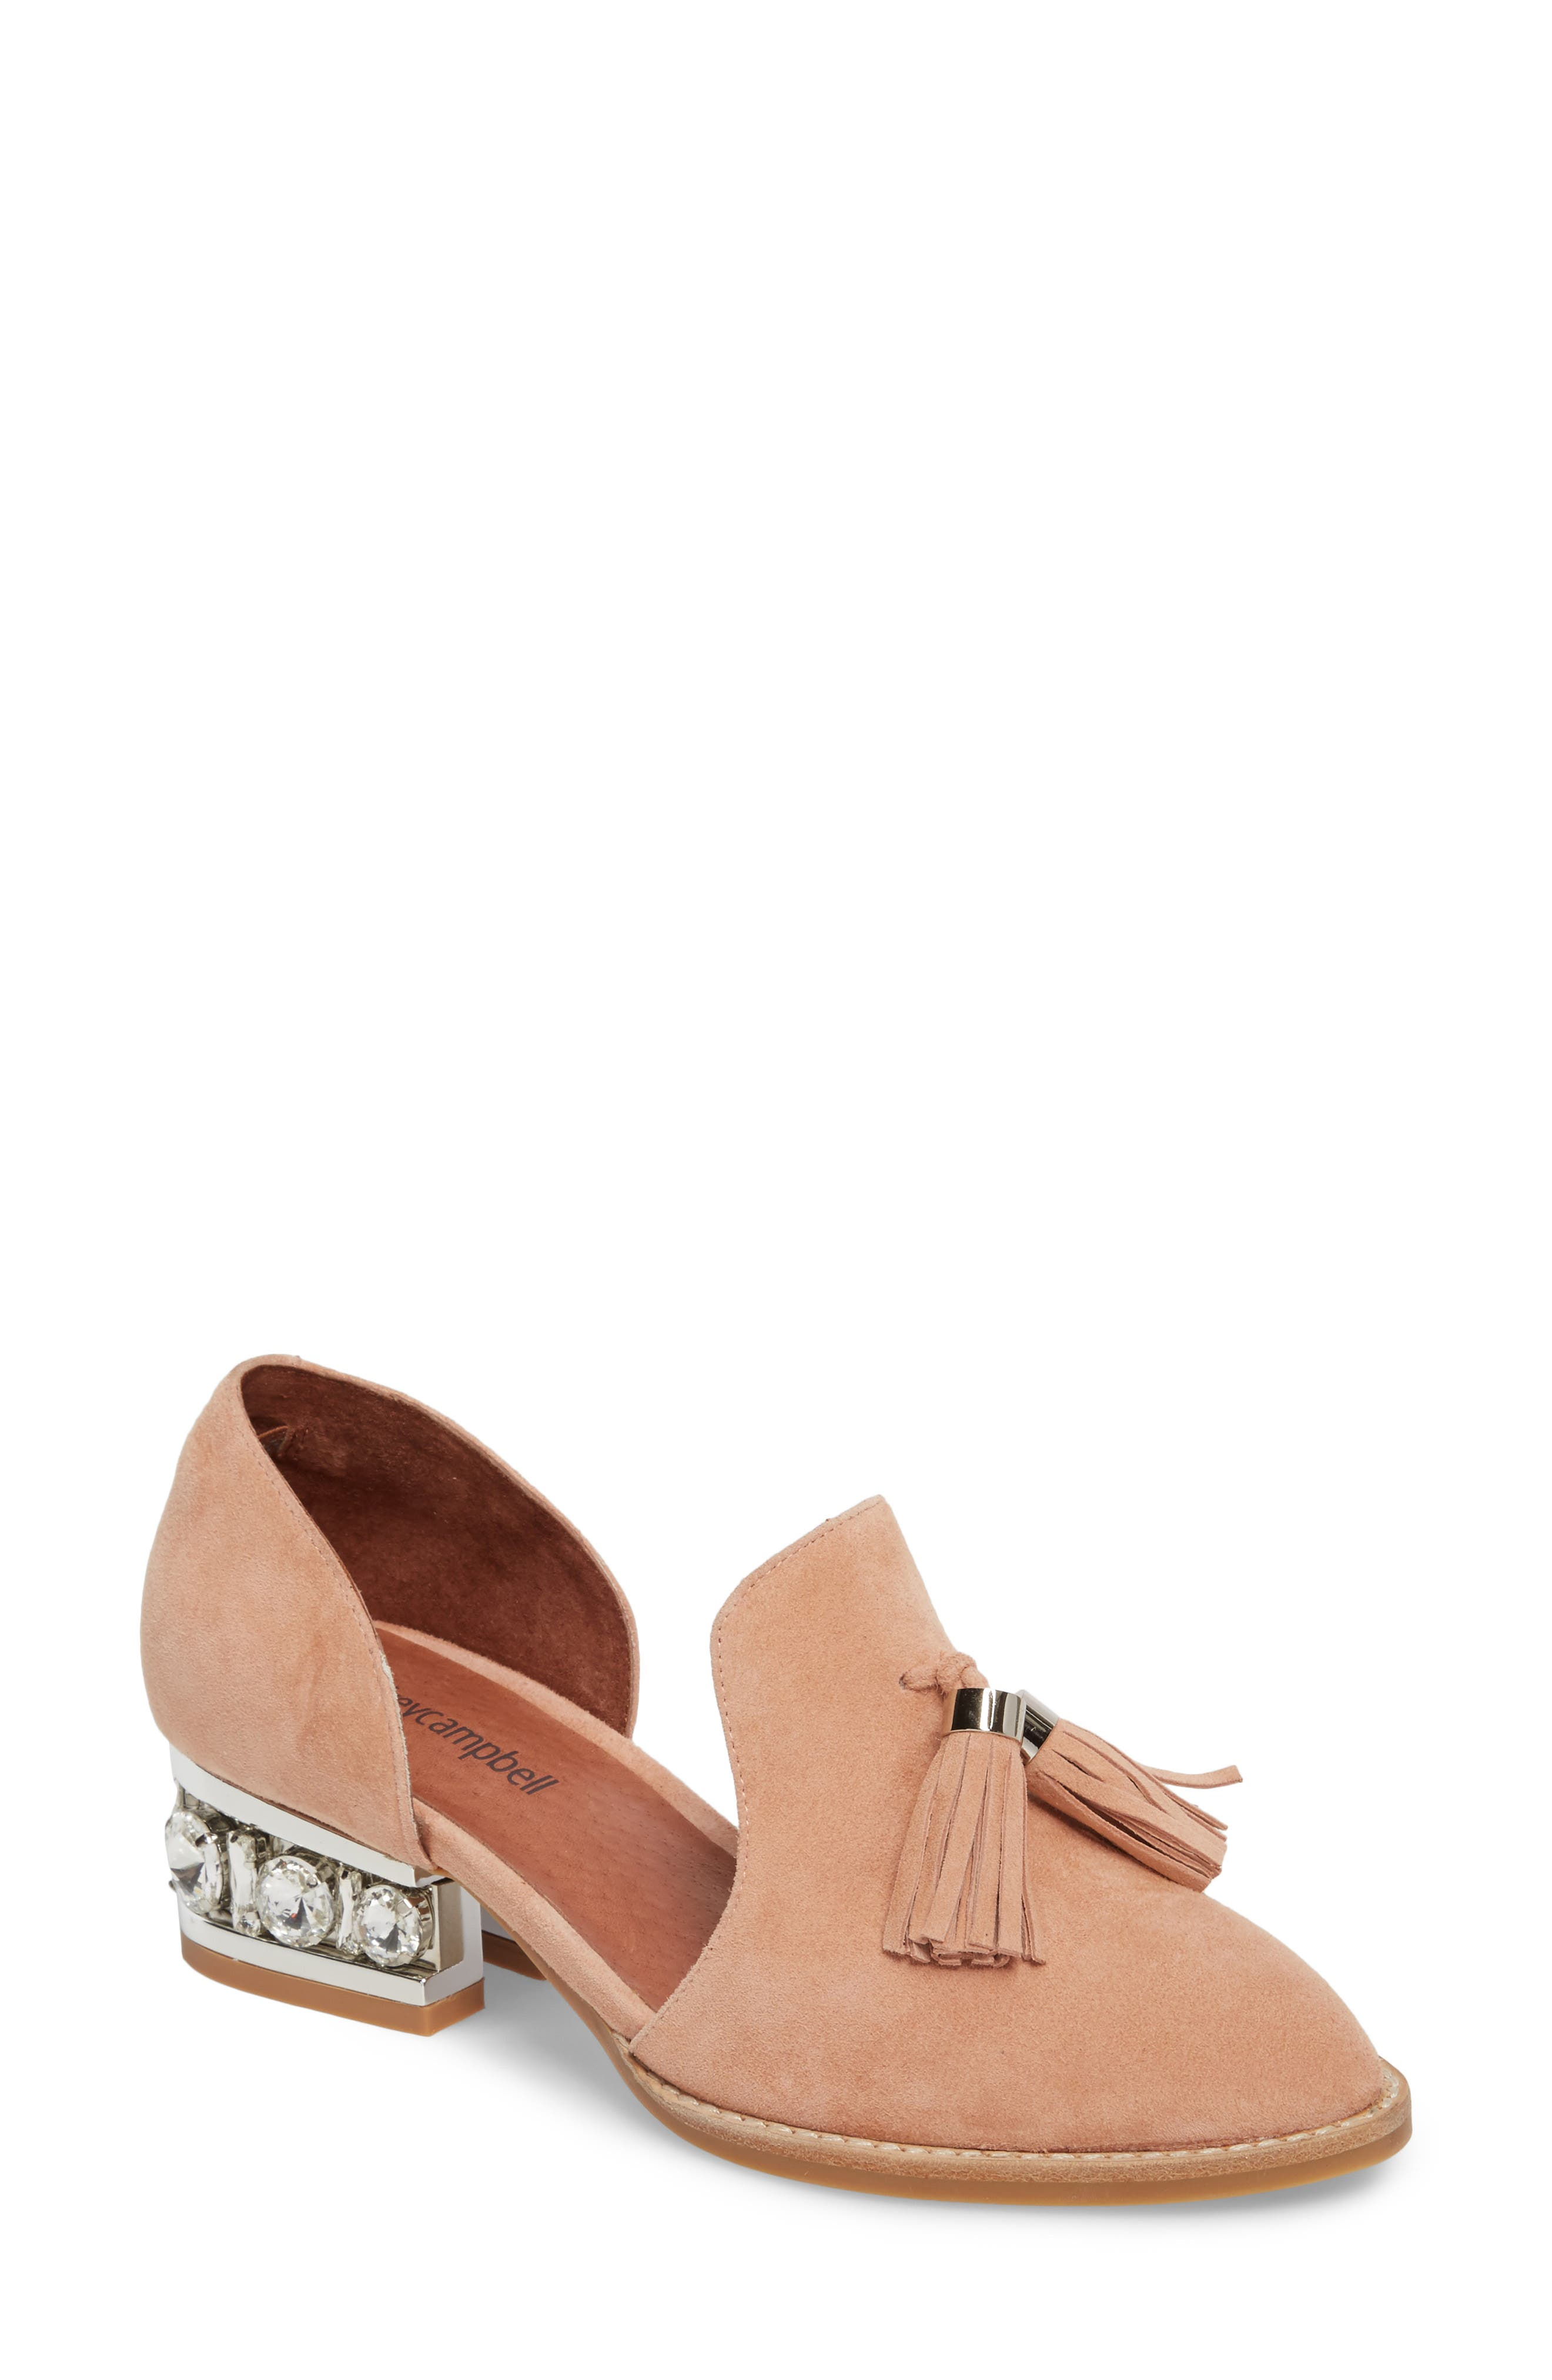 Civil Studded Loafer,                             Main thumbnail 1, color,                             Blush/ Silver Suede